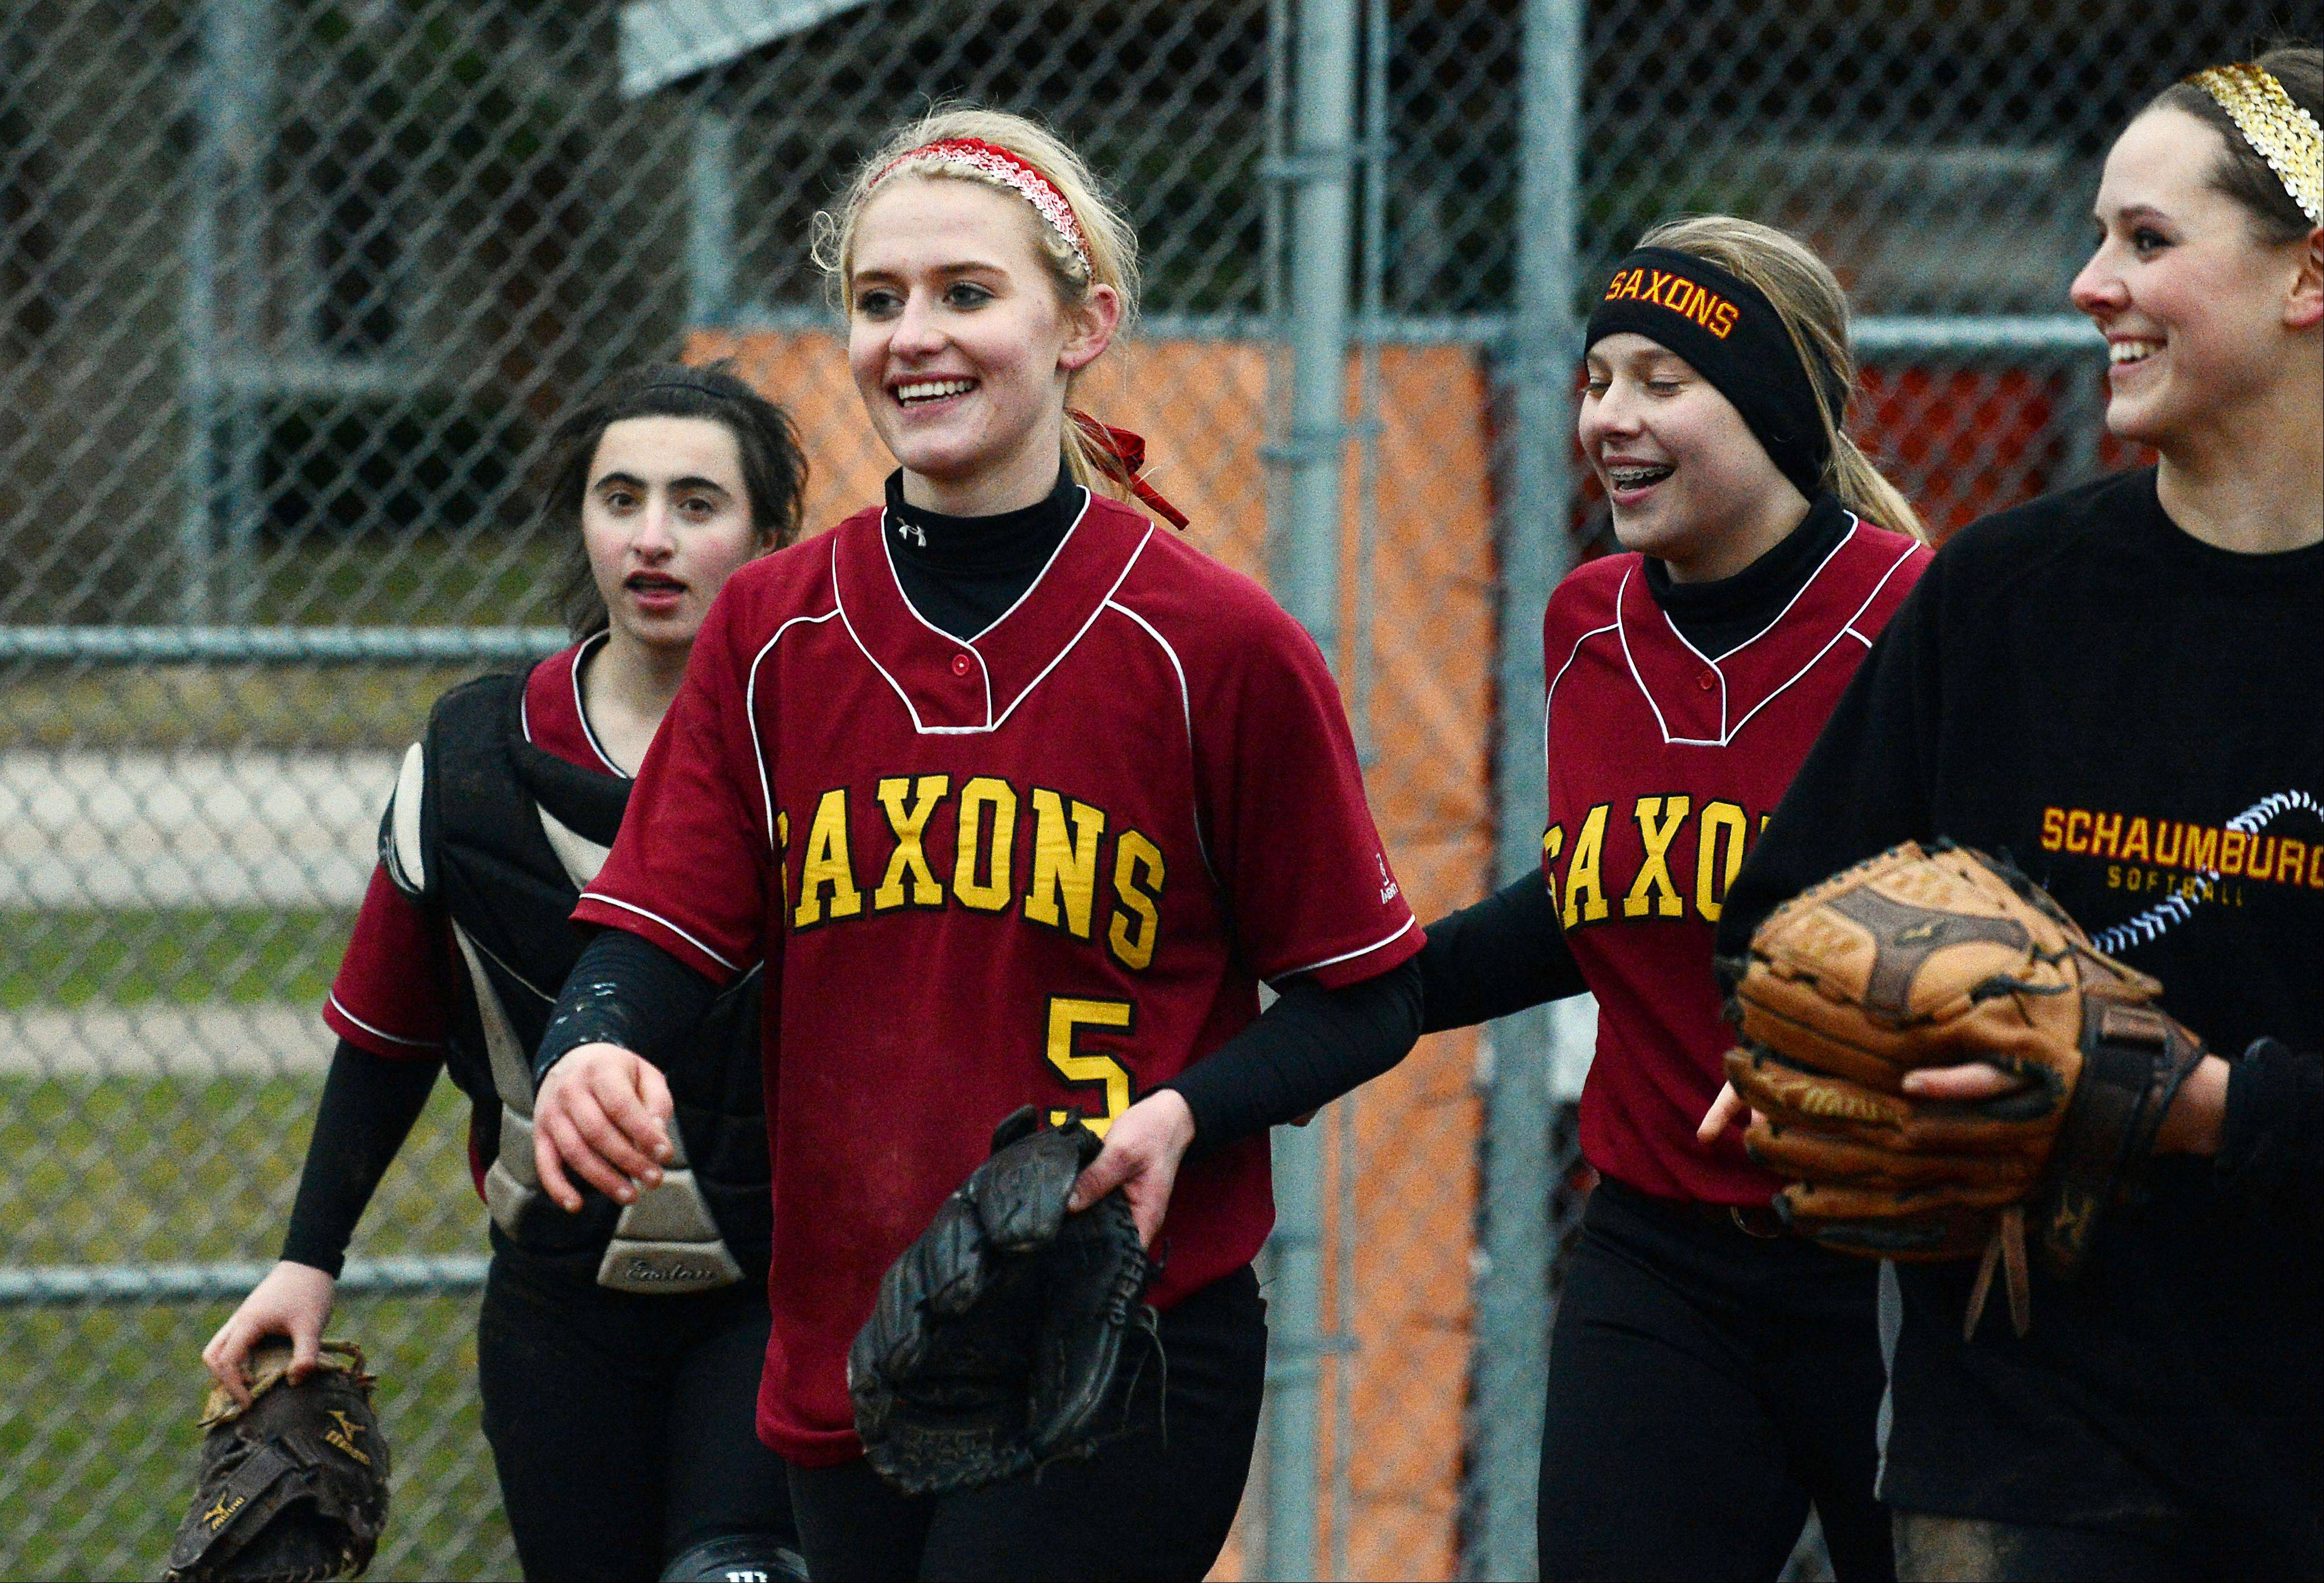 Schaumburg's Shannon Felde is all smiles after she pitched a no-hitter against Hersey in a 13-1 victory at Hersey on Friday.